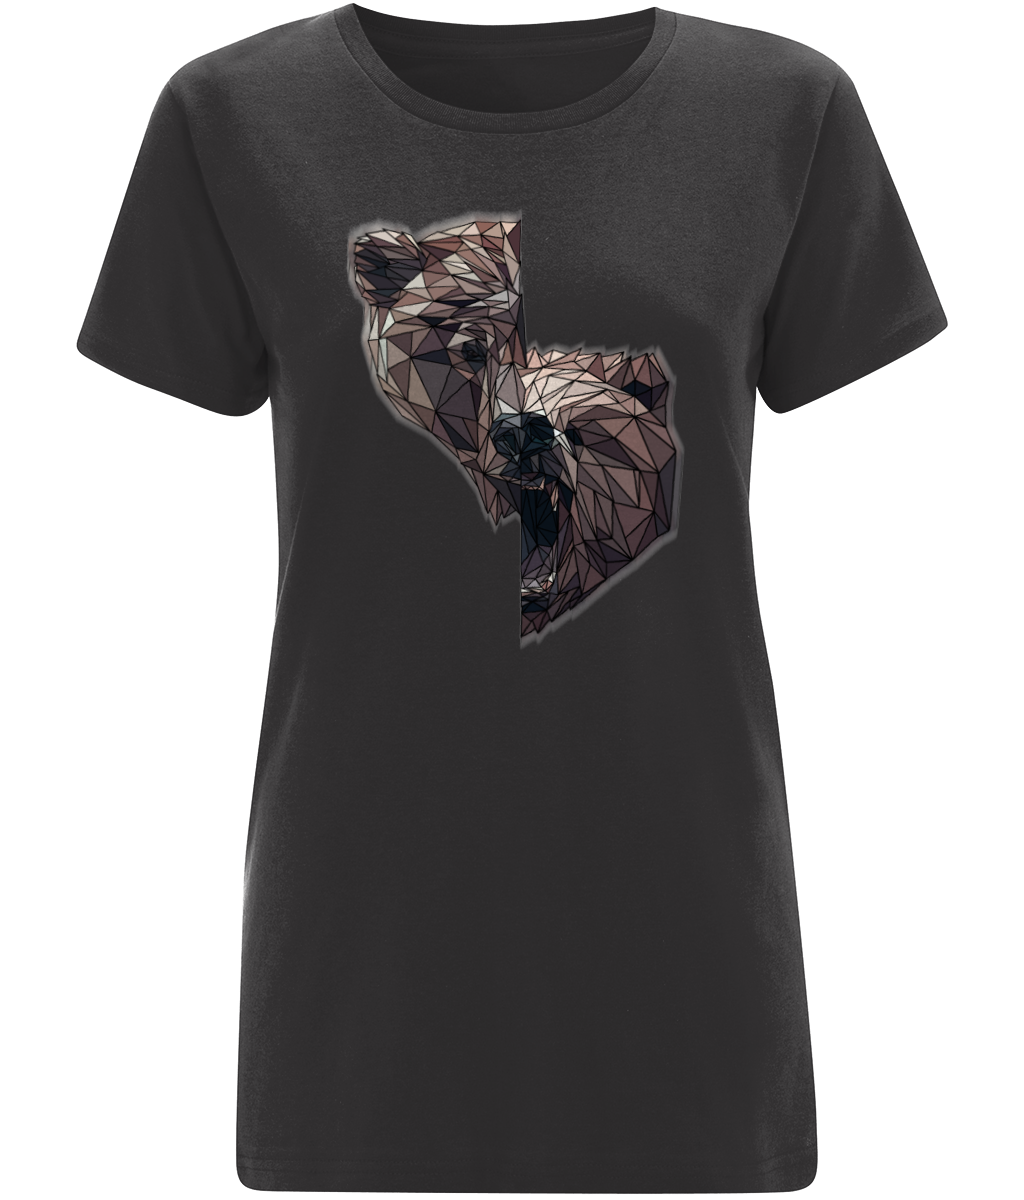 Split Bear Women's Grey Tee